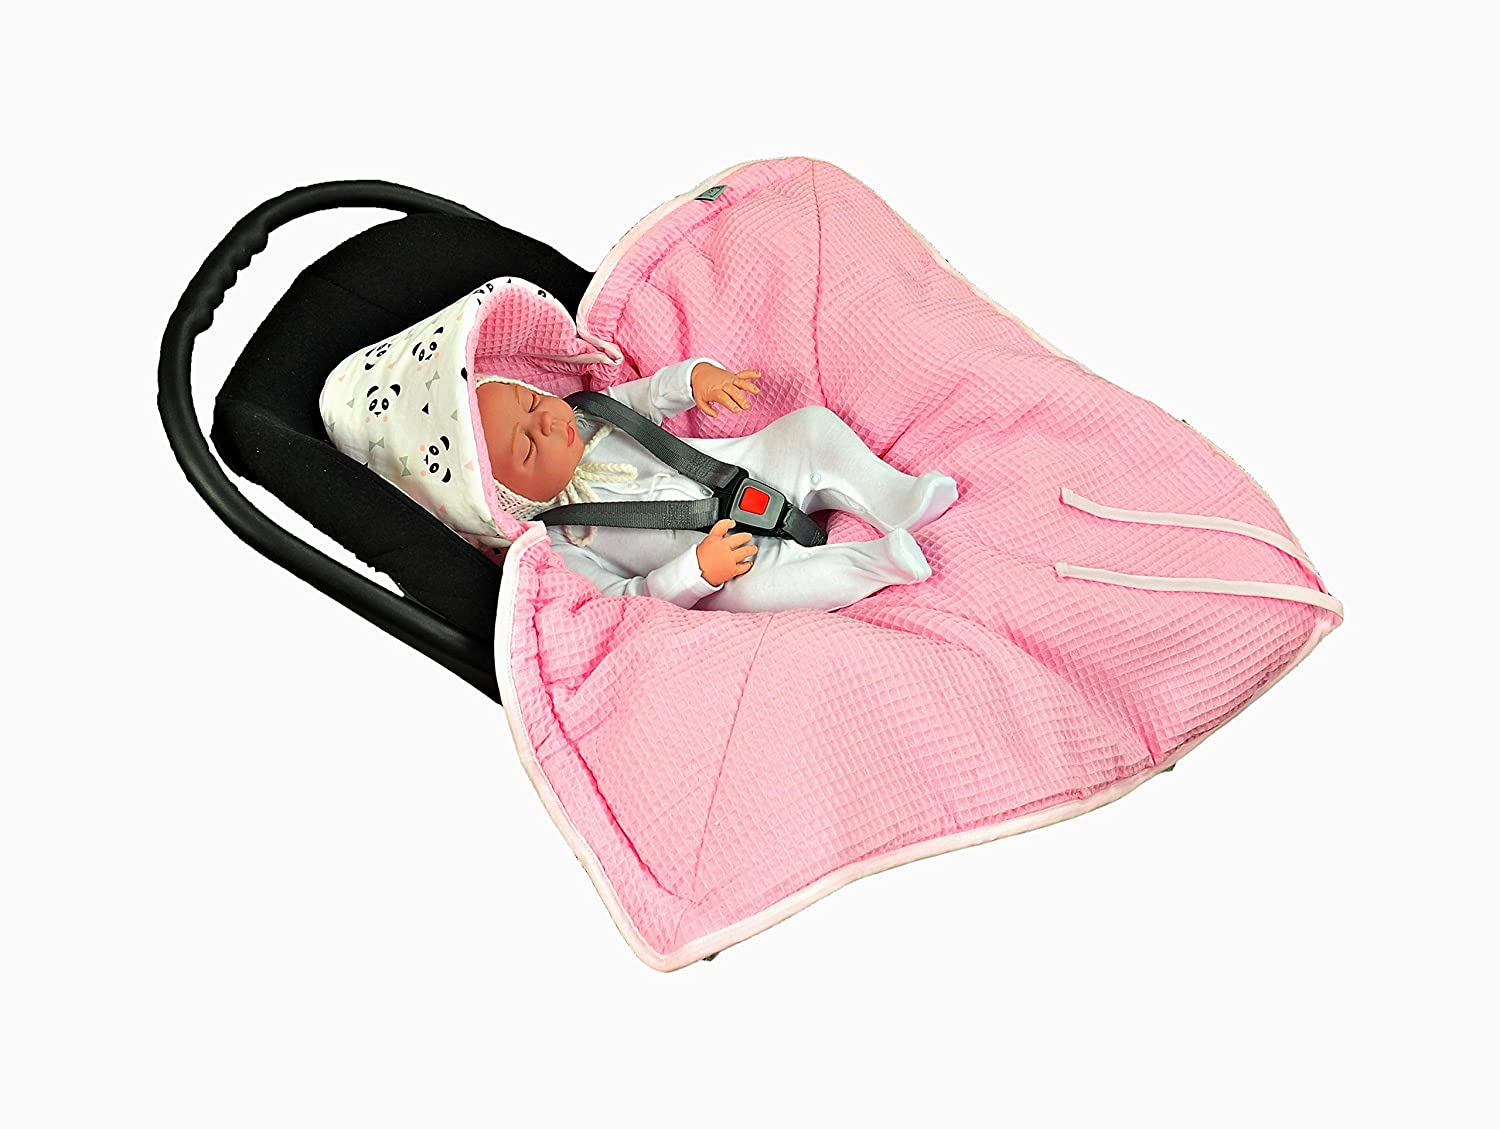 MoMika NEW Swaddling Blanket | Universal Fit for Car Seat | Stroller | Buggy or Baby Bed | Made of Waffle | 100% Cotton | Colour: Rose